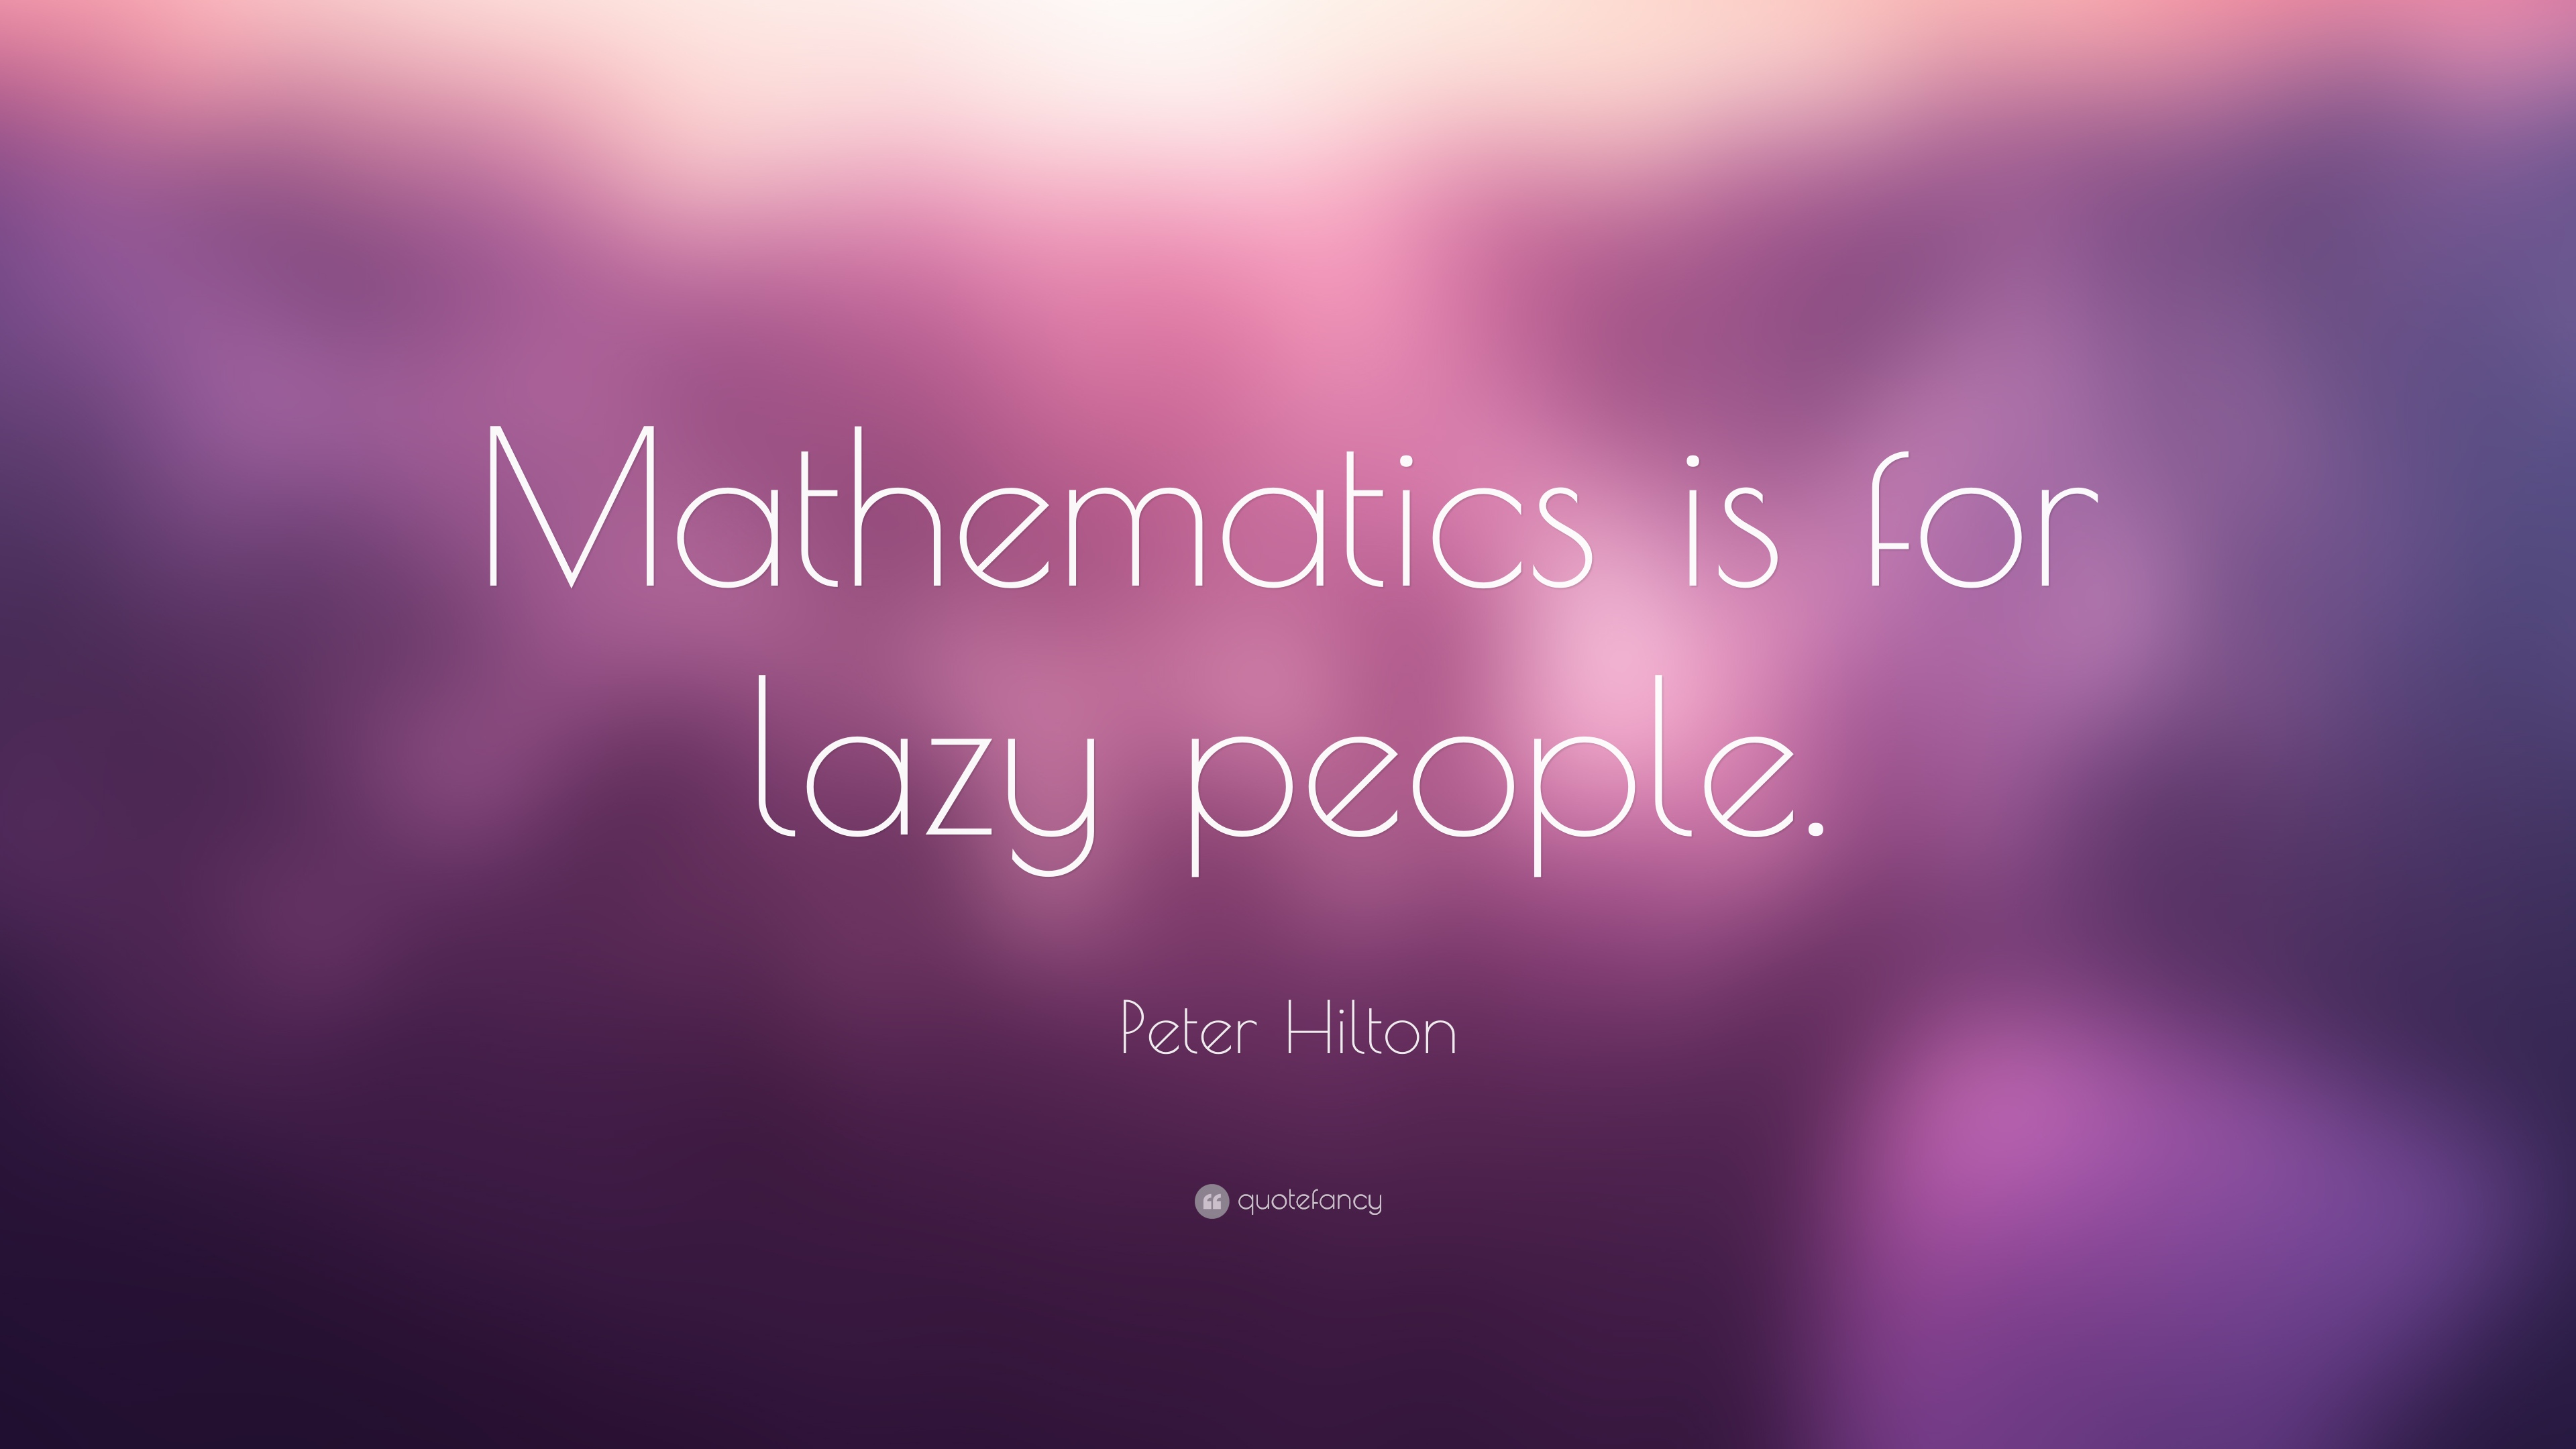 Peter Hilton Quotes (5 wallpapers) - Quotefancy